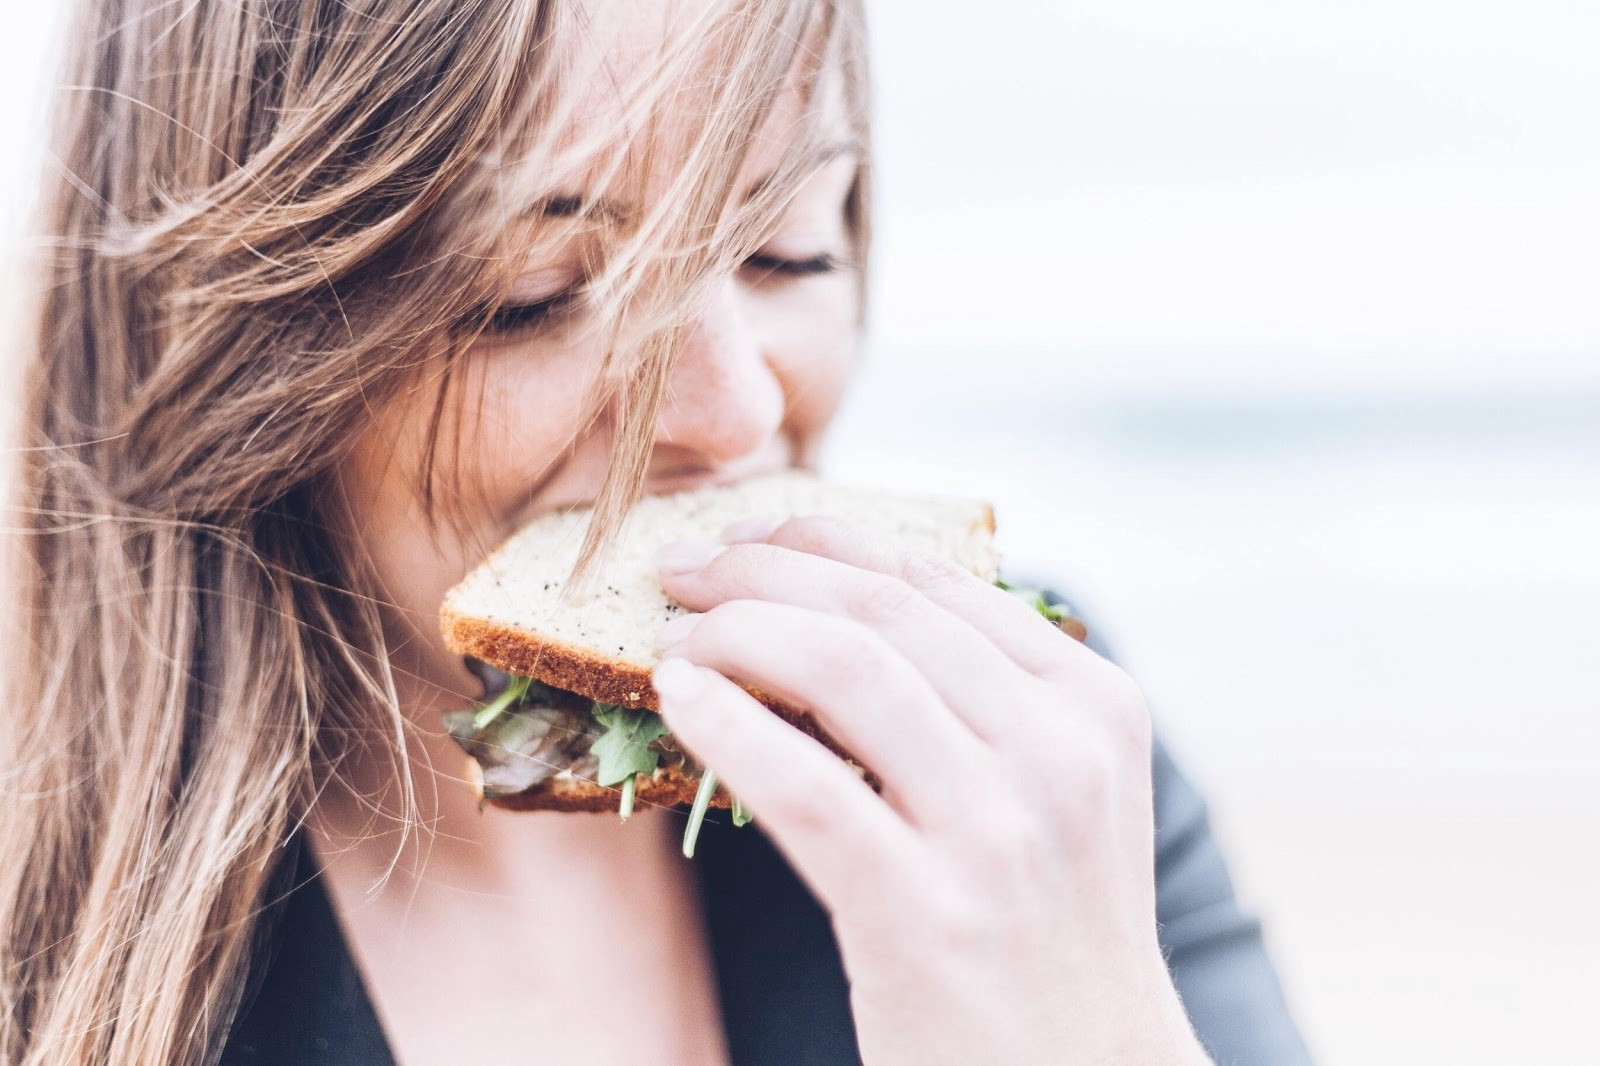 A girl eating a sandwich mindfully